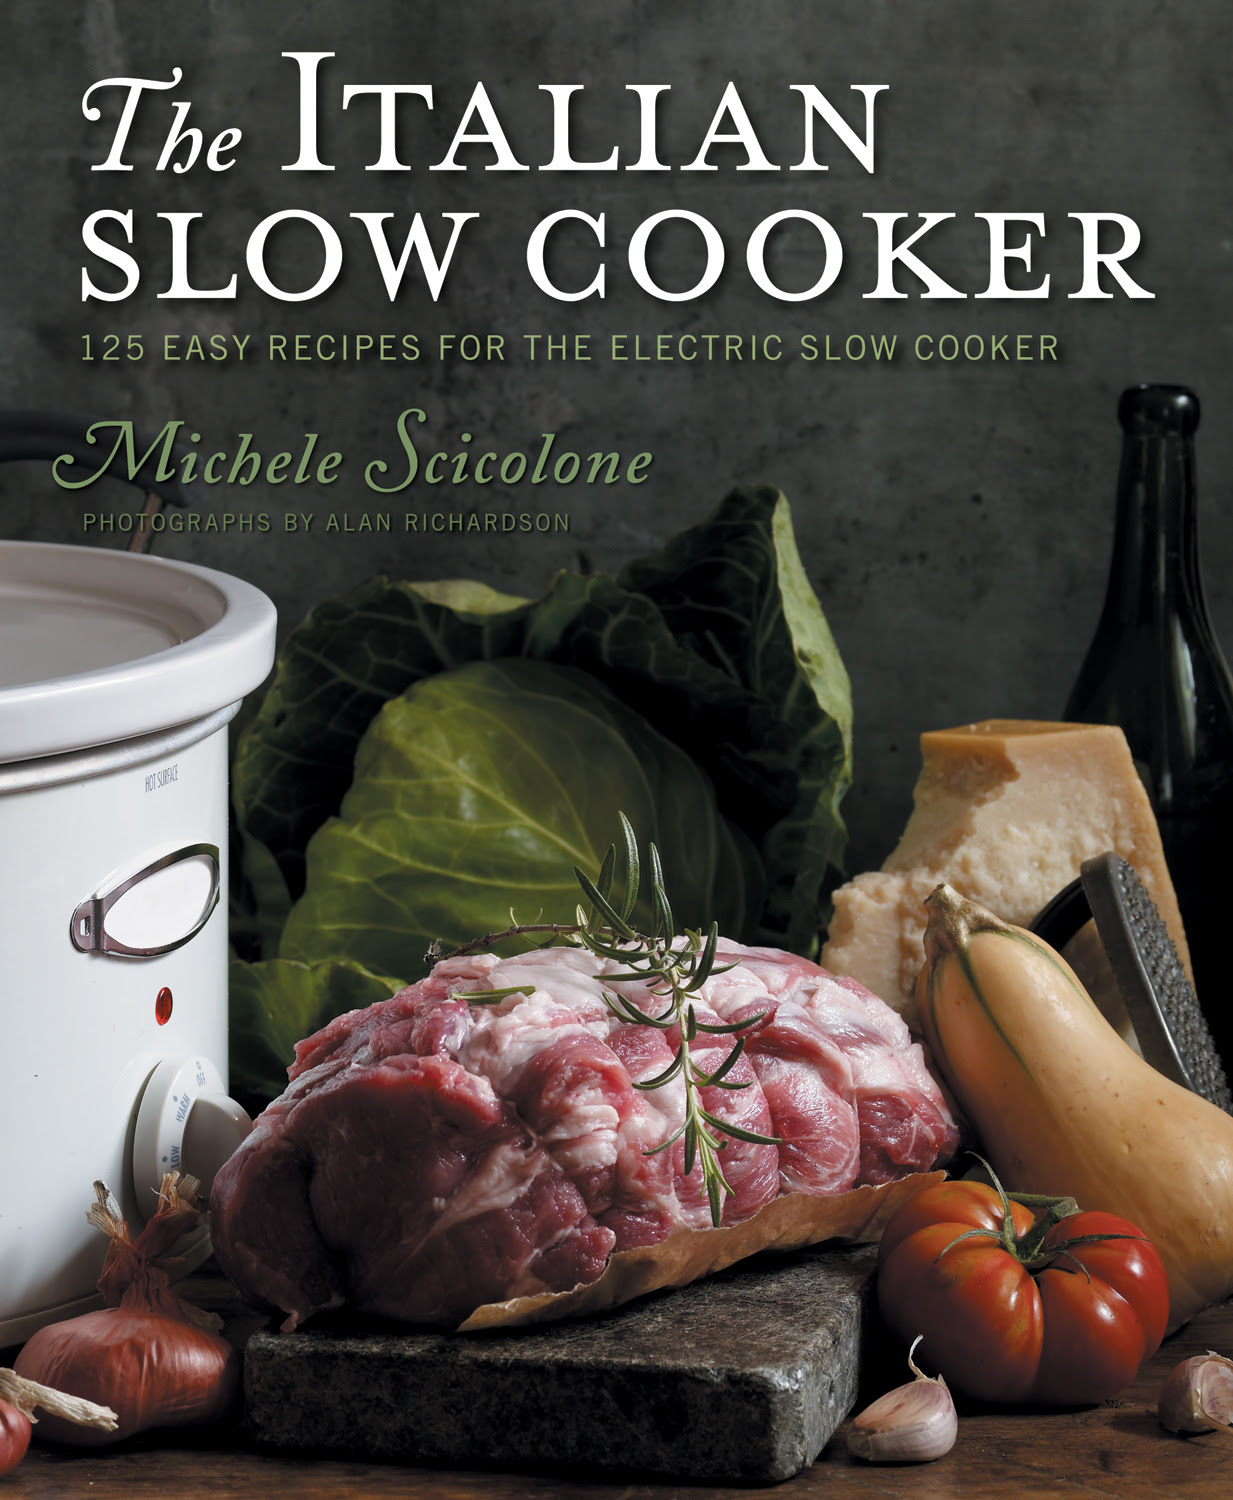 The Italian Slow Cooker Book Review